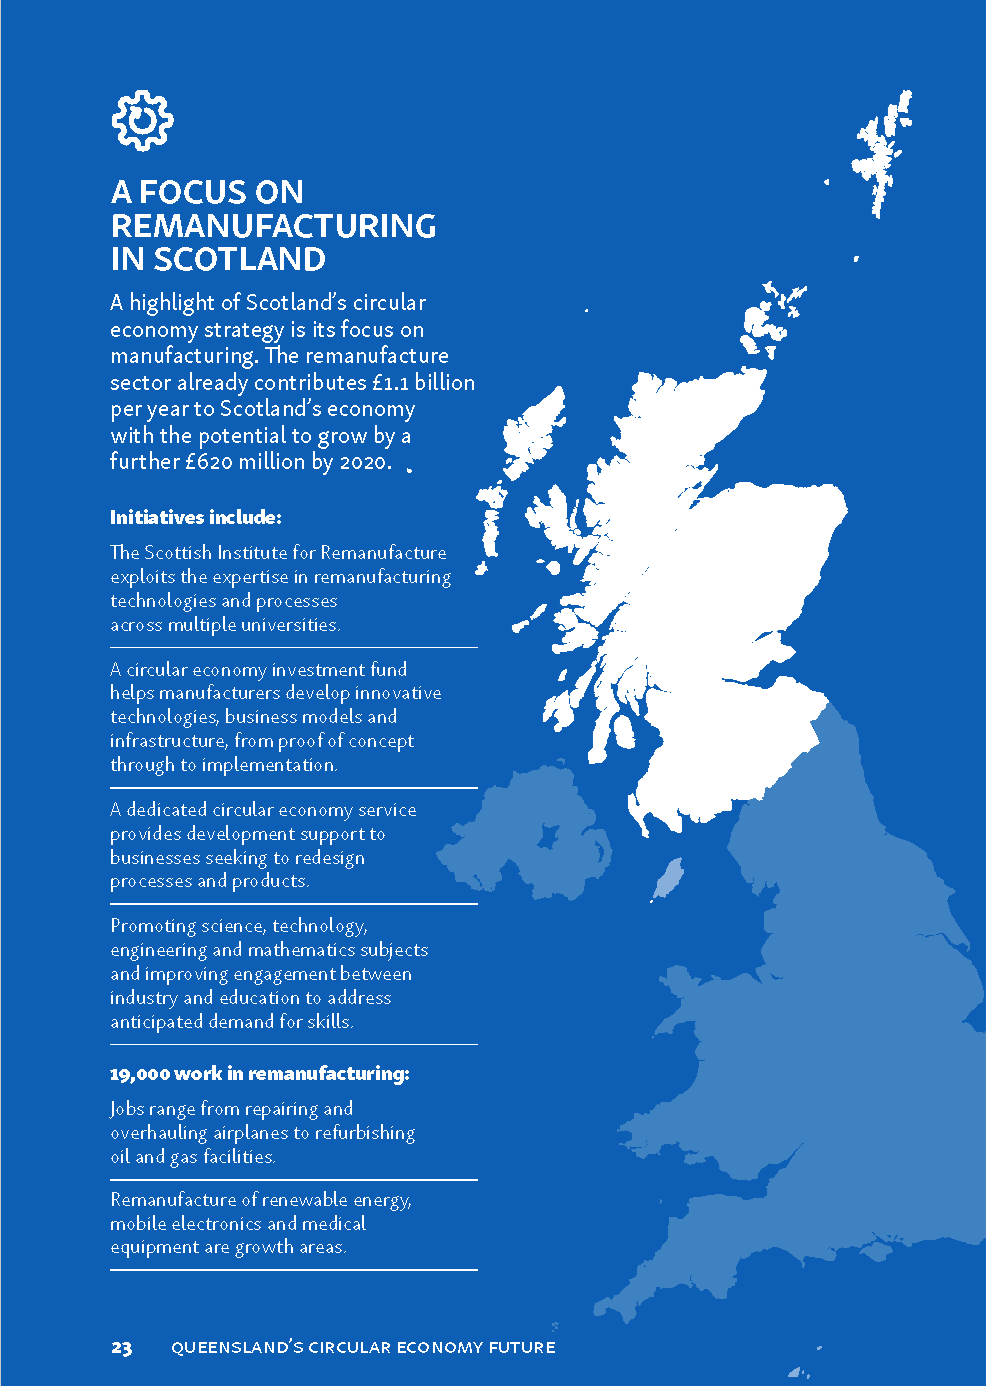 Focus on remanufacturing_Scotland.png